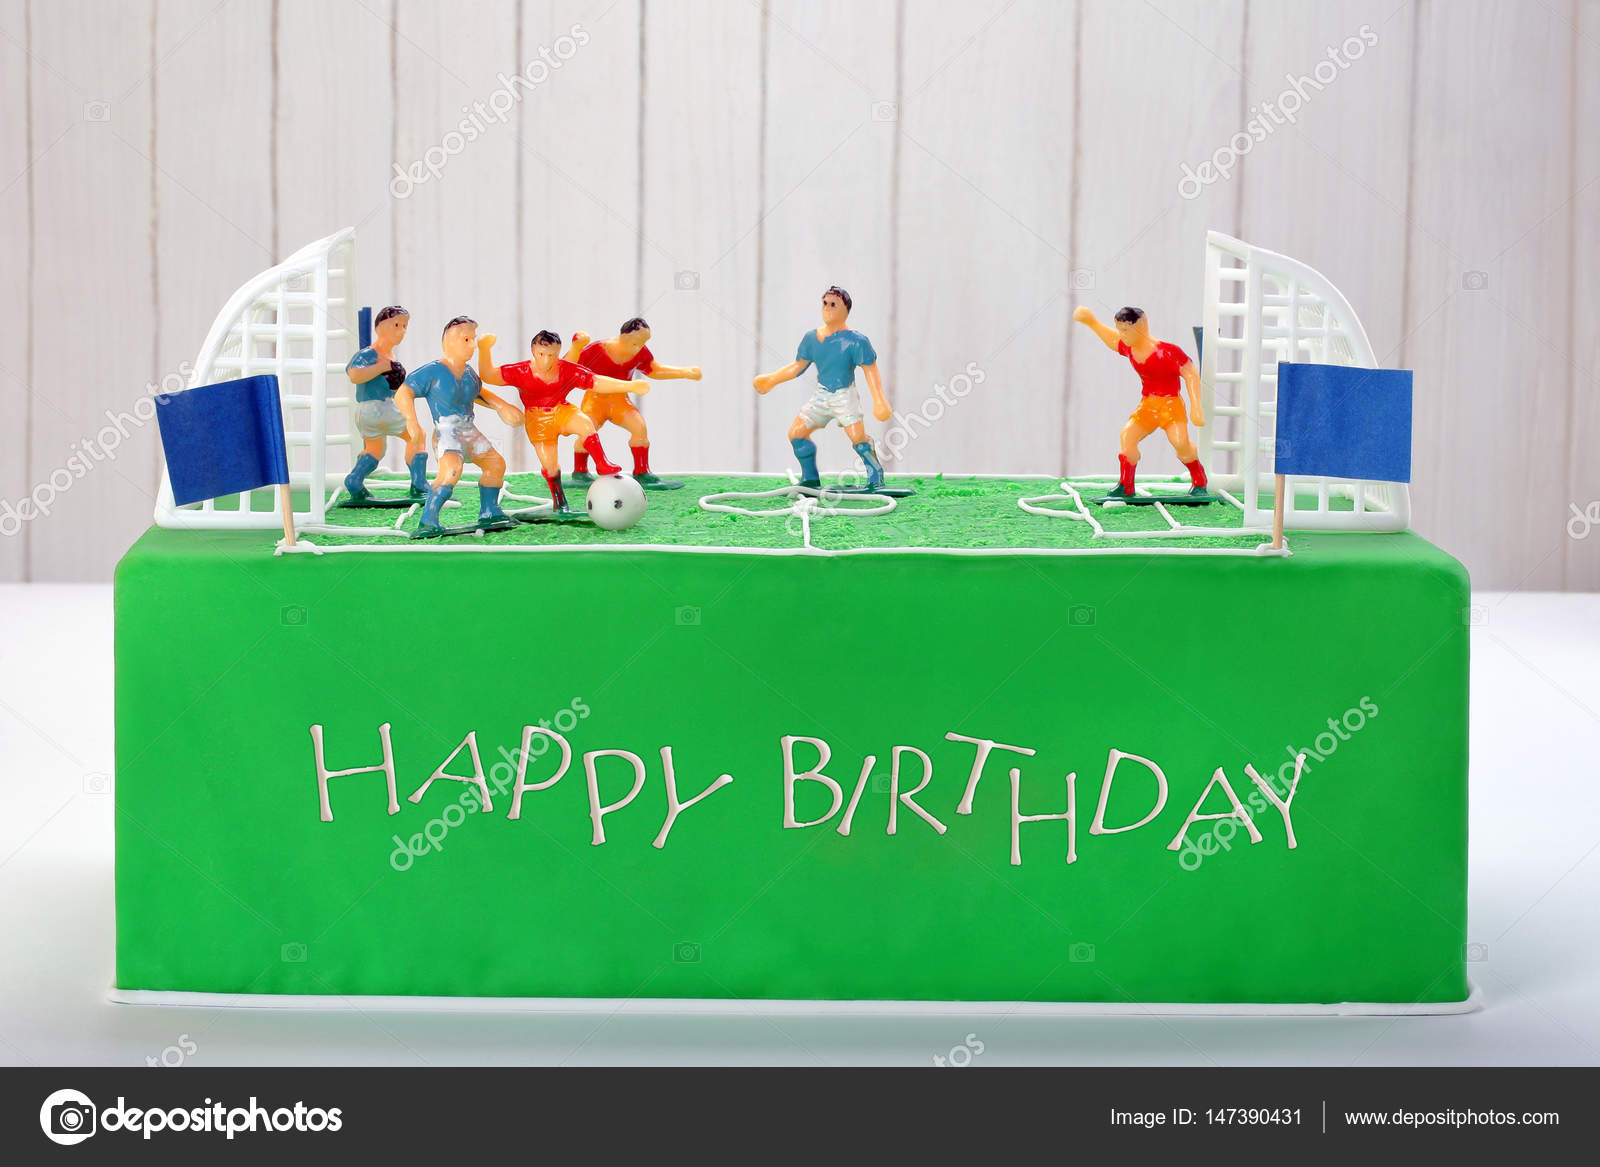 Birthday Football Cake On The Party Or Reception Stock Photo